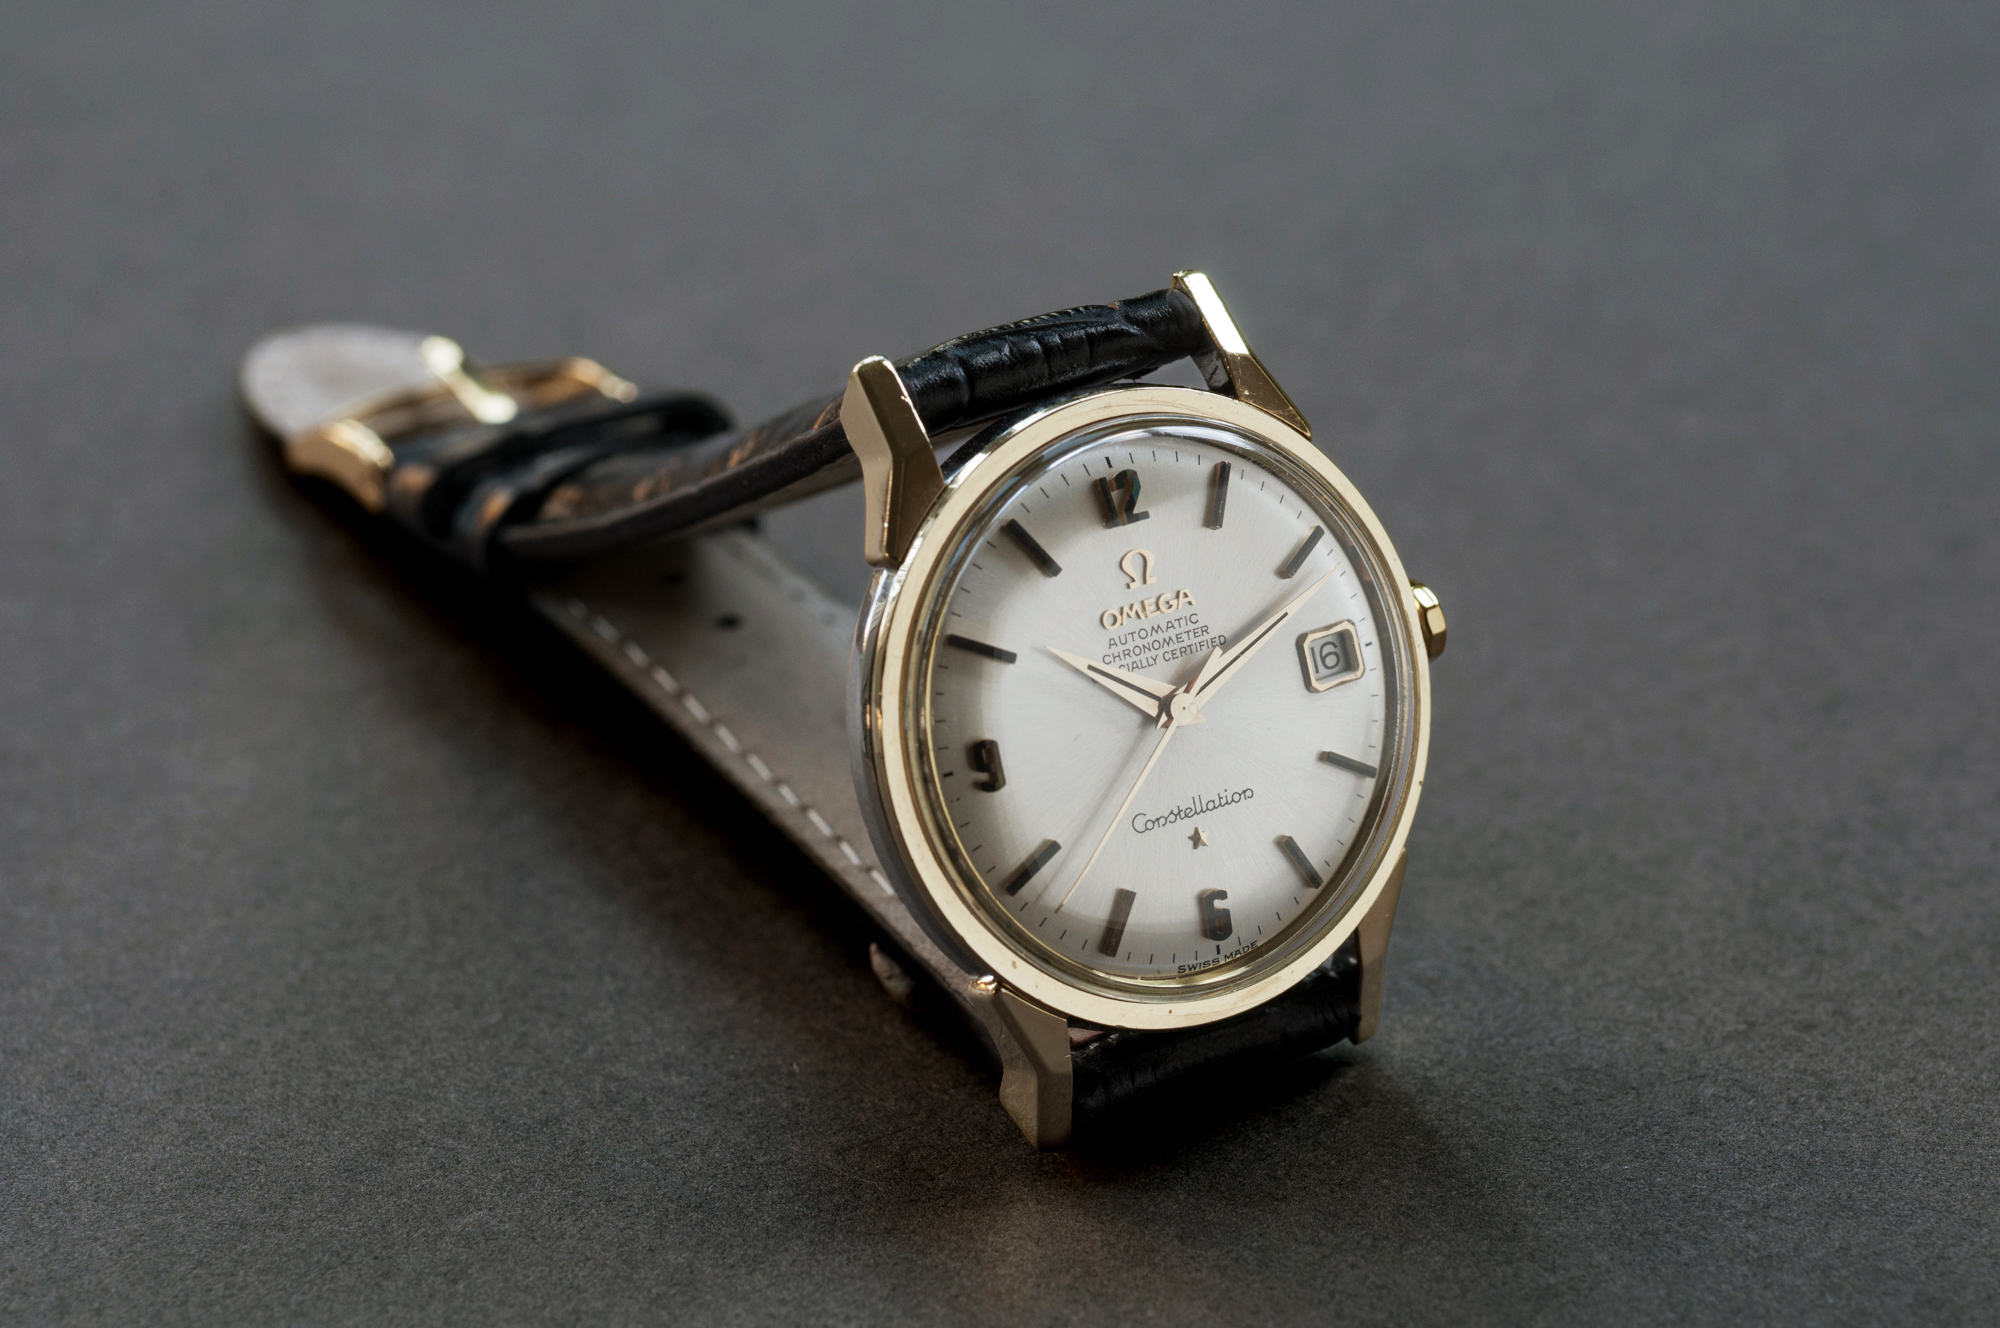 Omega Constellation 168.0005